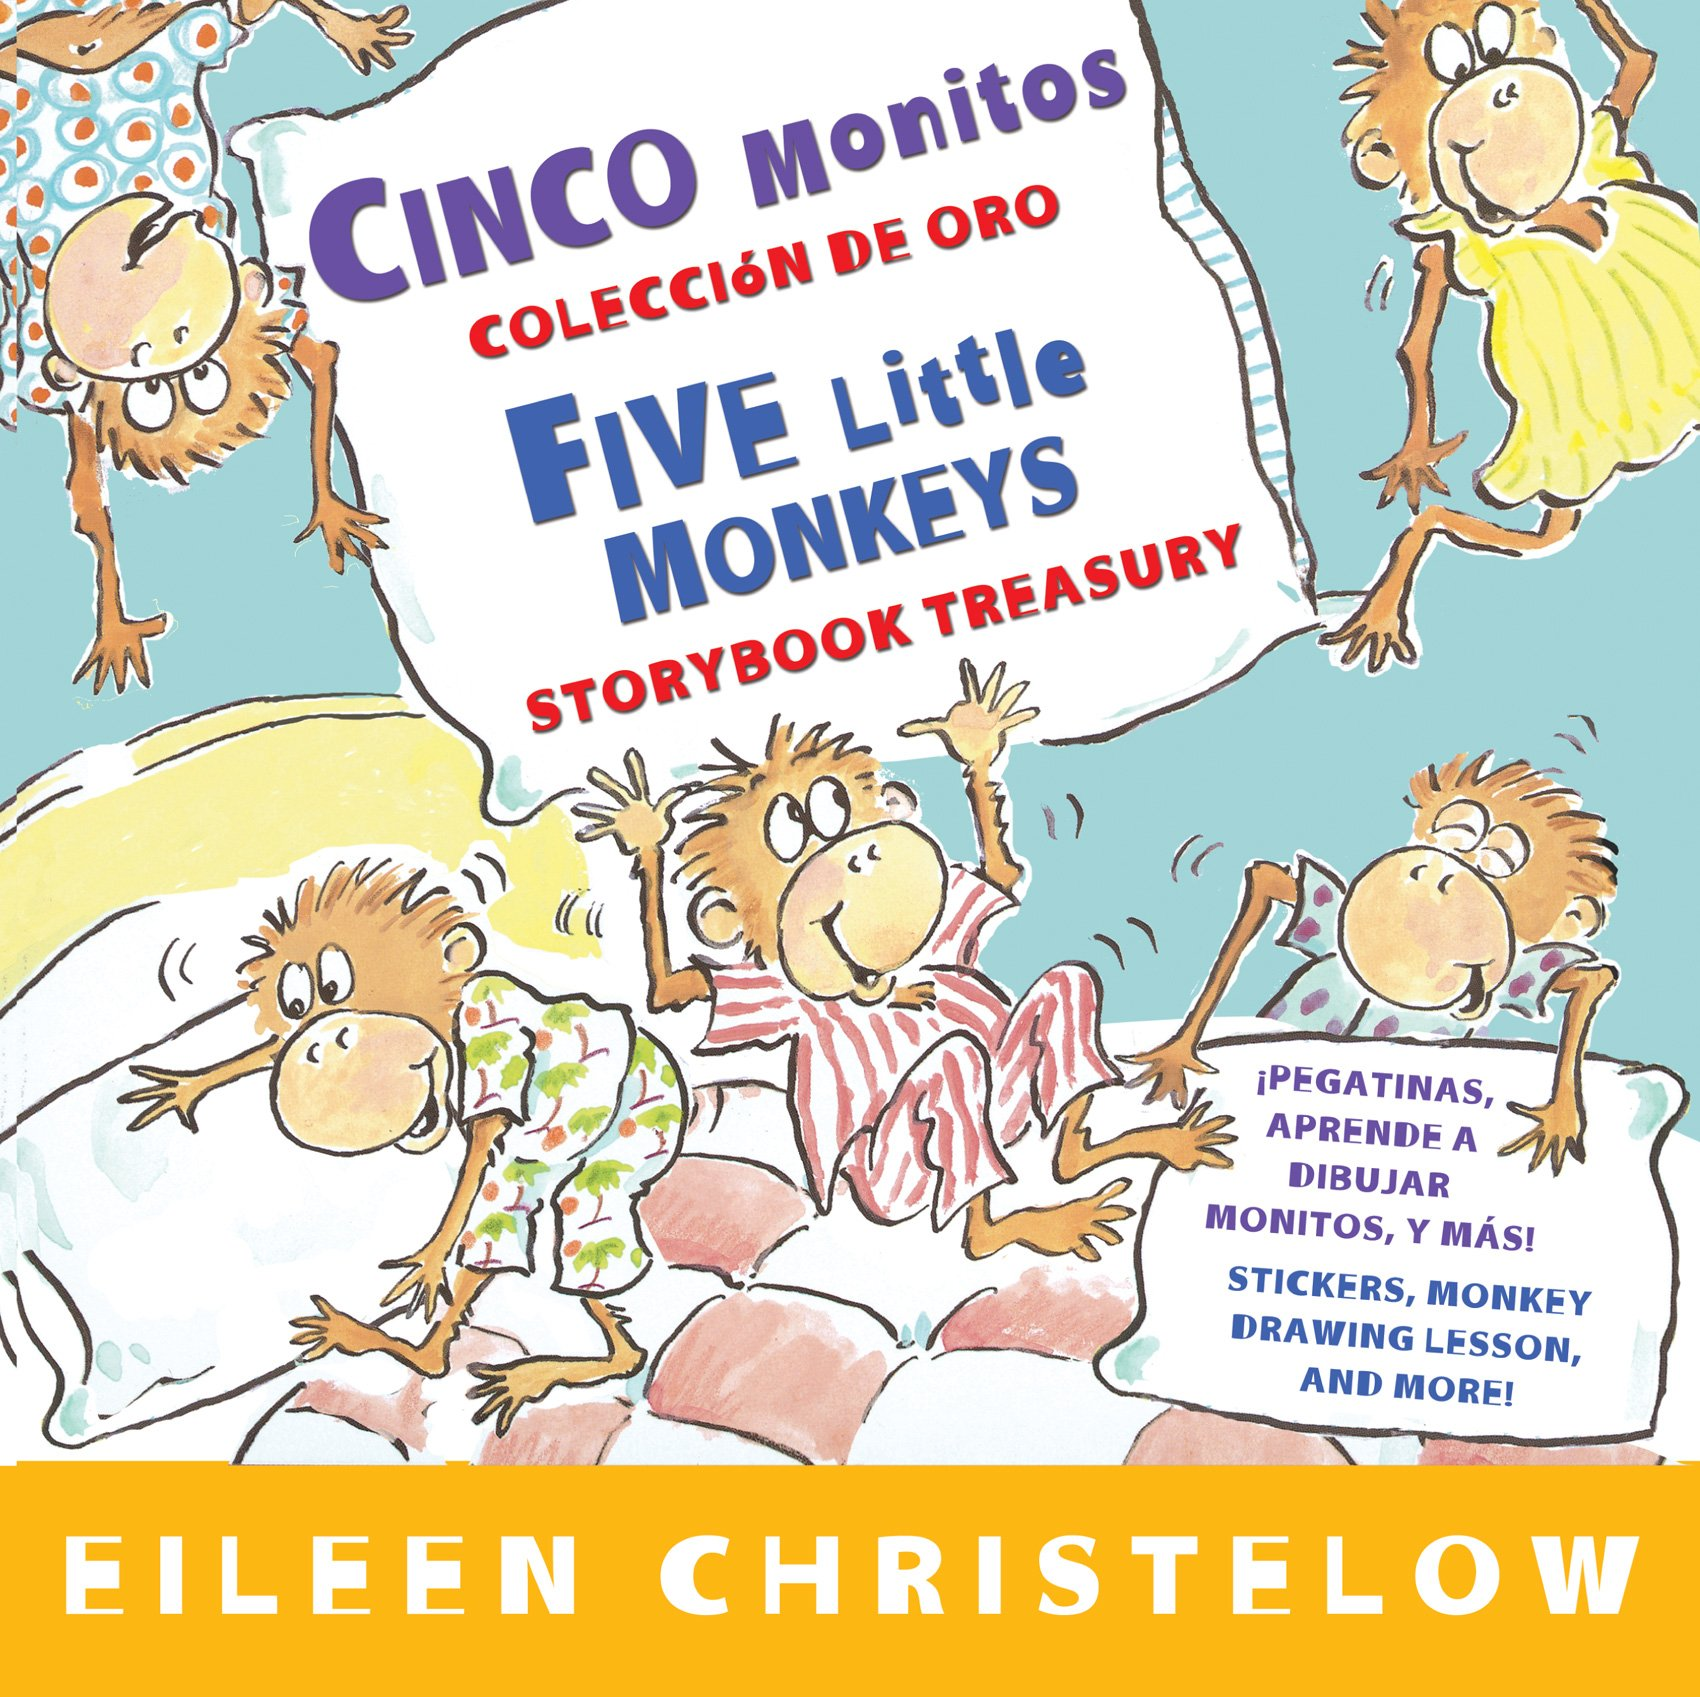 Download Cinco monitos Coleccion de oro/Five Little Monkeys Storybook Treasury (A Five Little Monkeys Story) (English and Spanish Edition) ebook